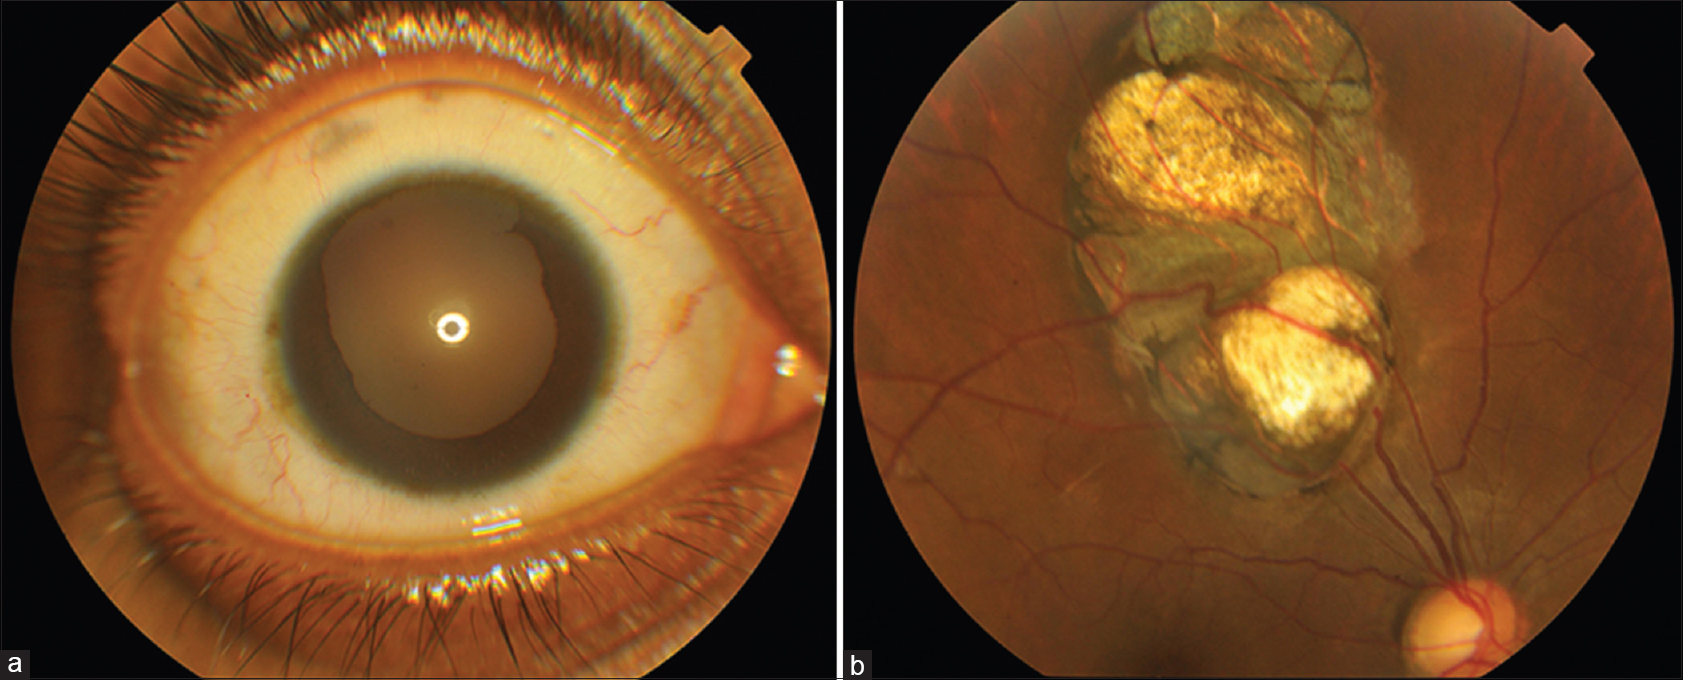 Atypical superior iris and retinochoroidal coloboma Jain AM